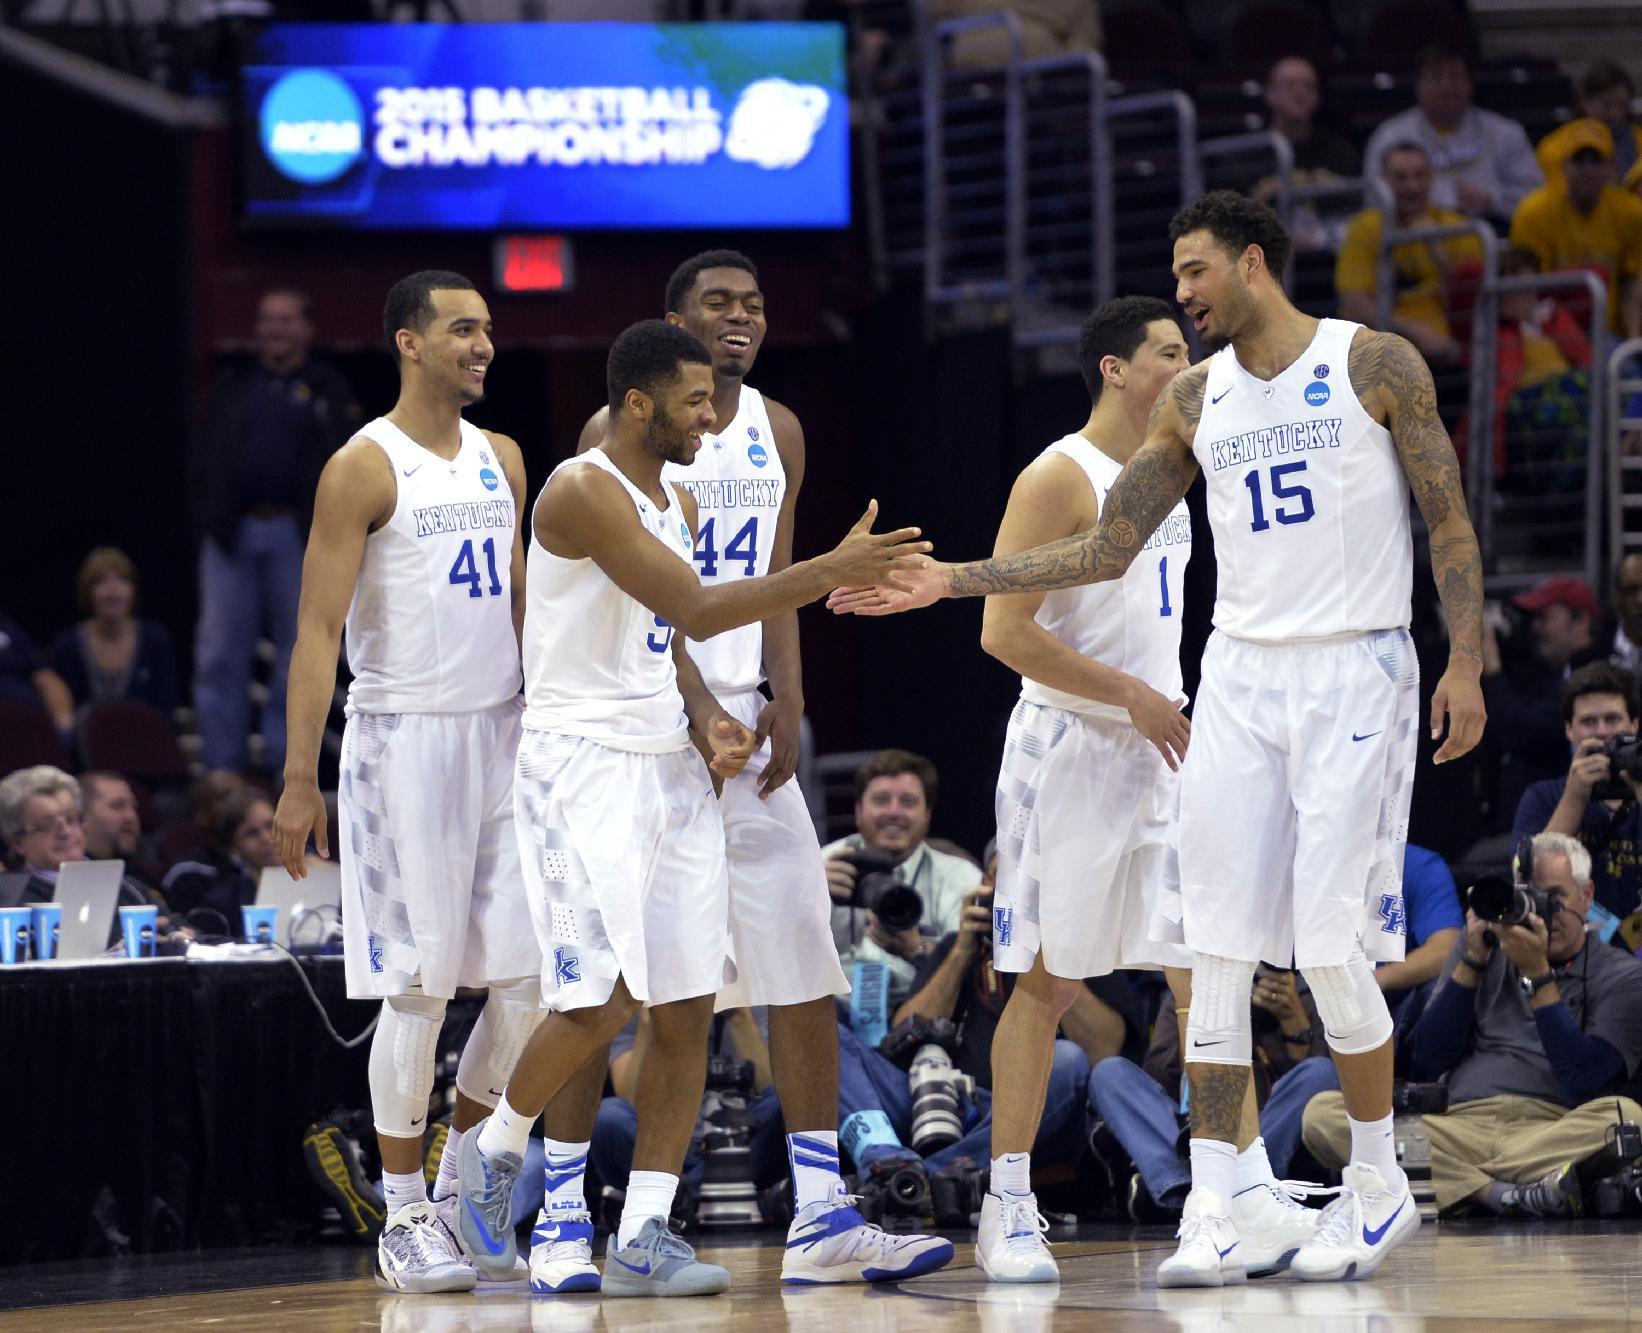 Column: Is Kentucky the greatest college team ever? Might be